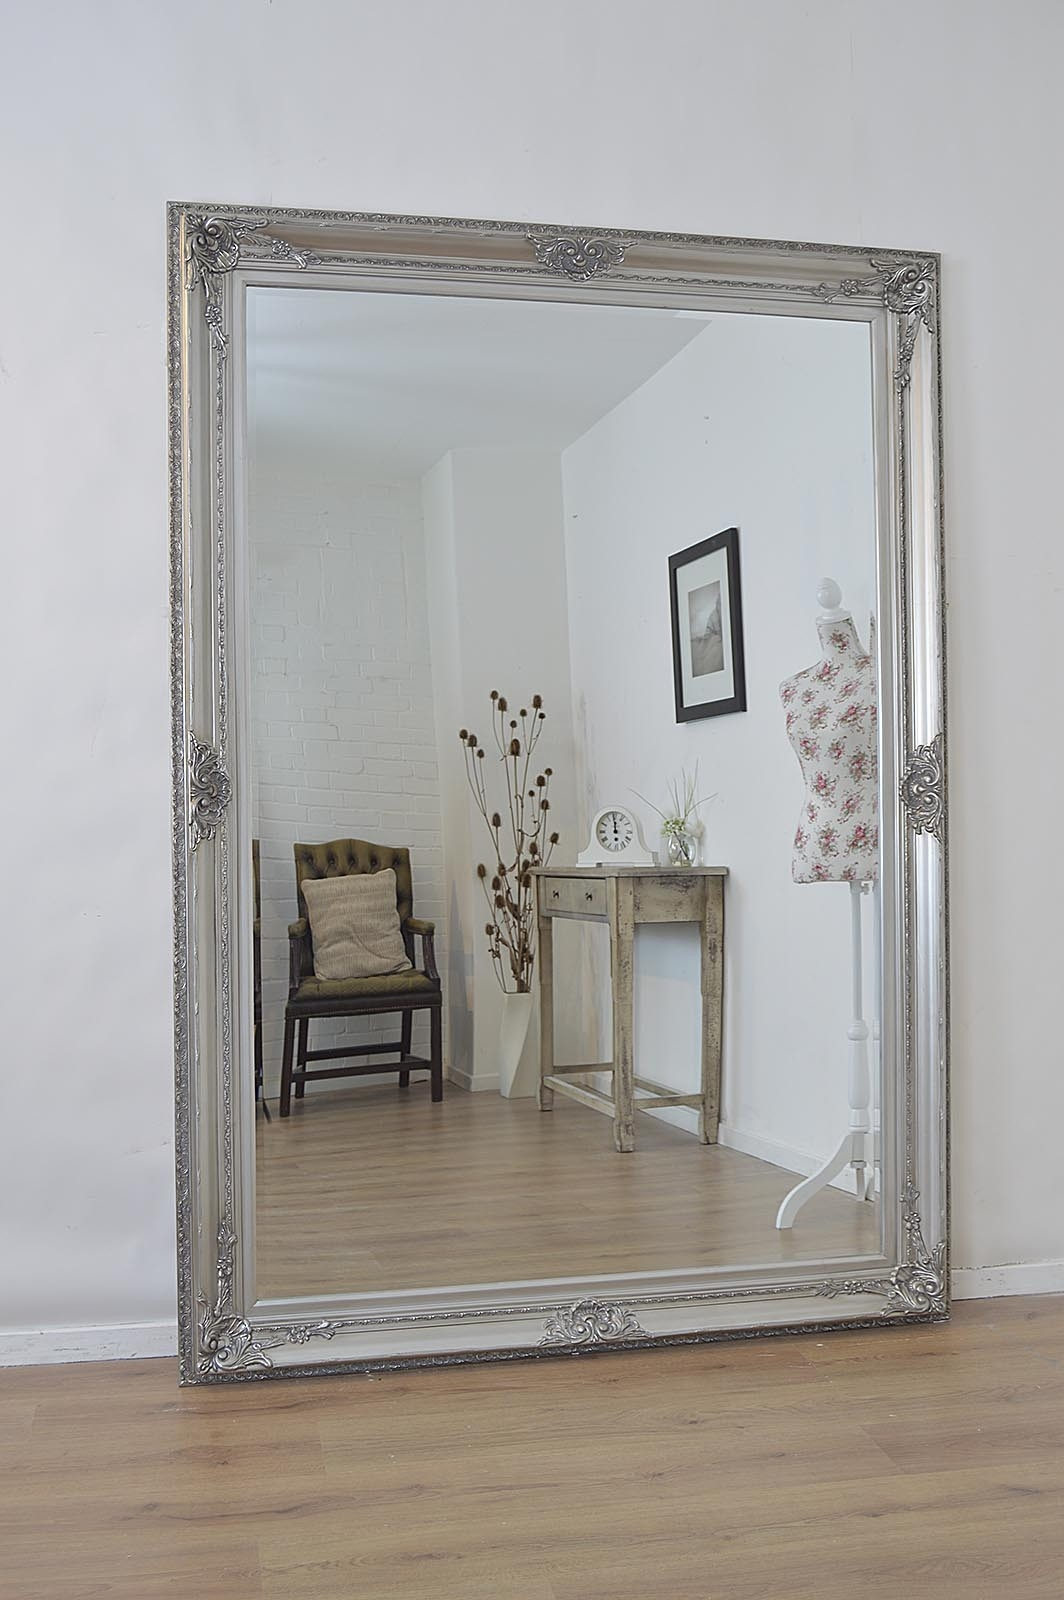 Standing Wall Mirror Wall Shelves Intended For Big Floor Standing Mirrors (Image 14 of 15)